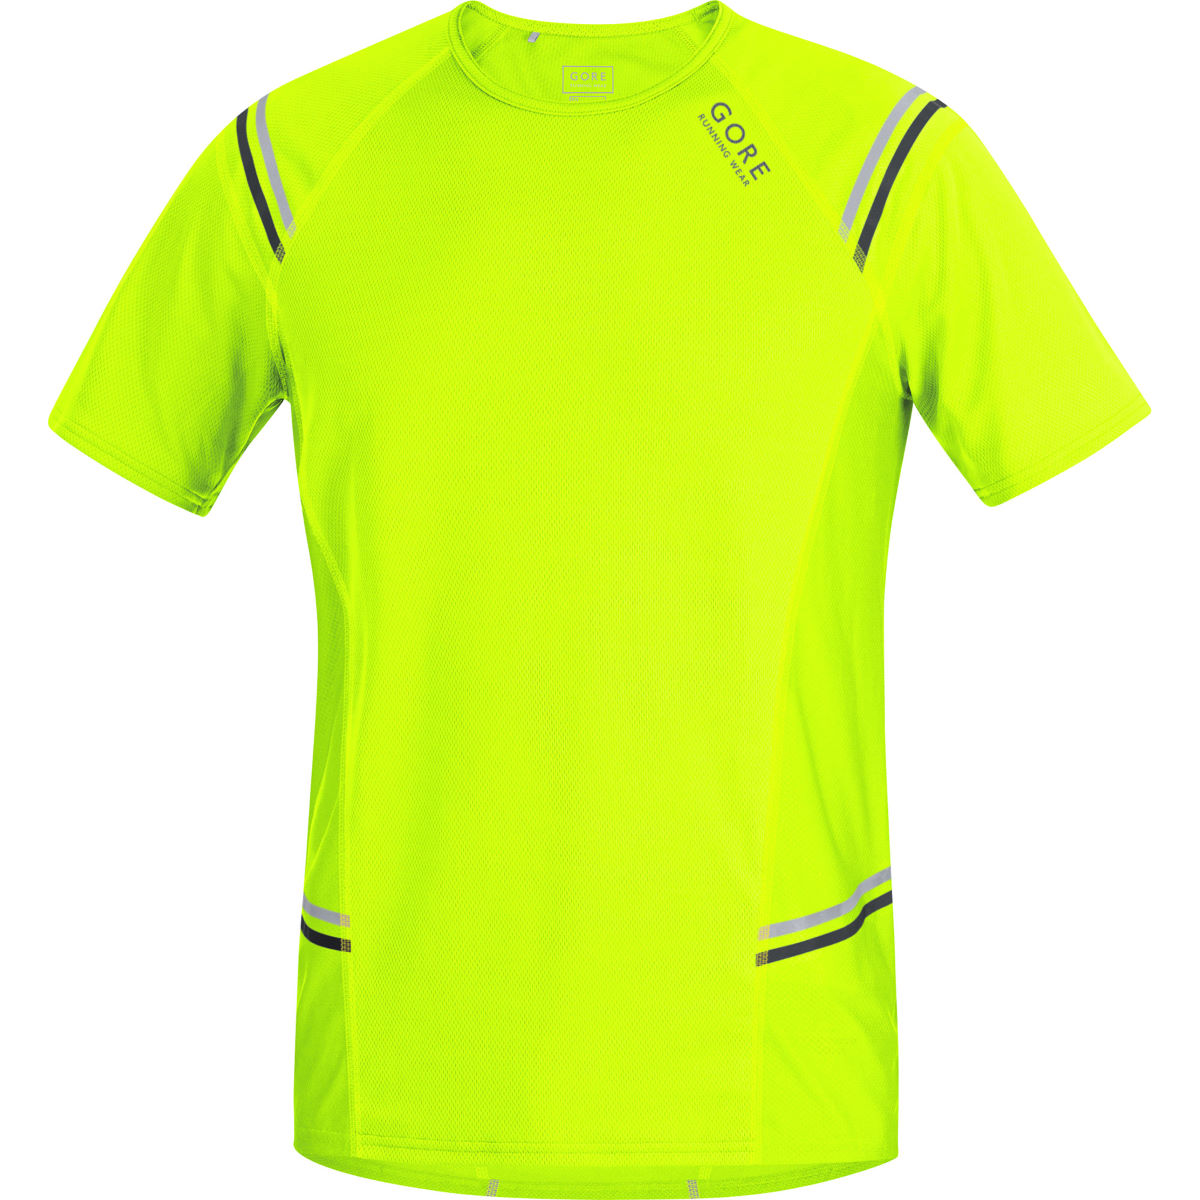 Maillot Gore Running Wear Mythos 6.0 - S neon yellow